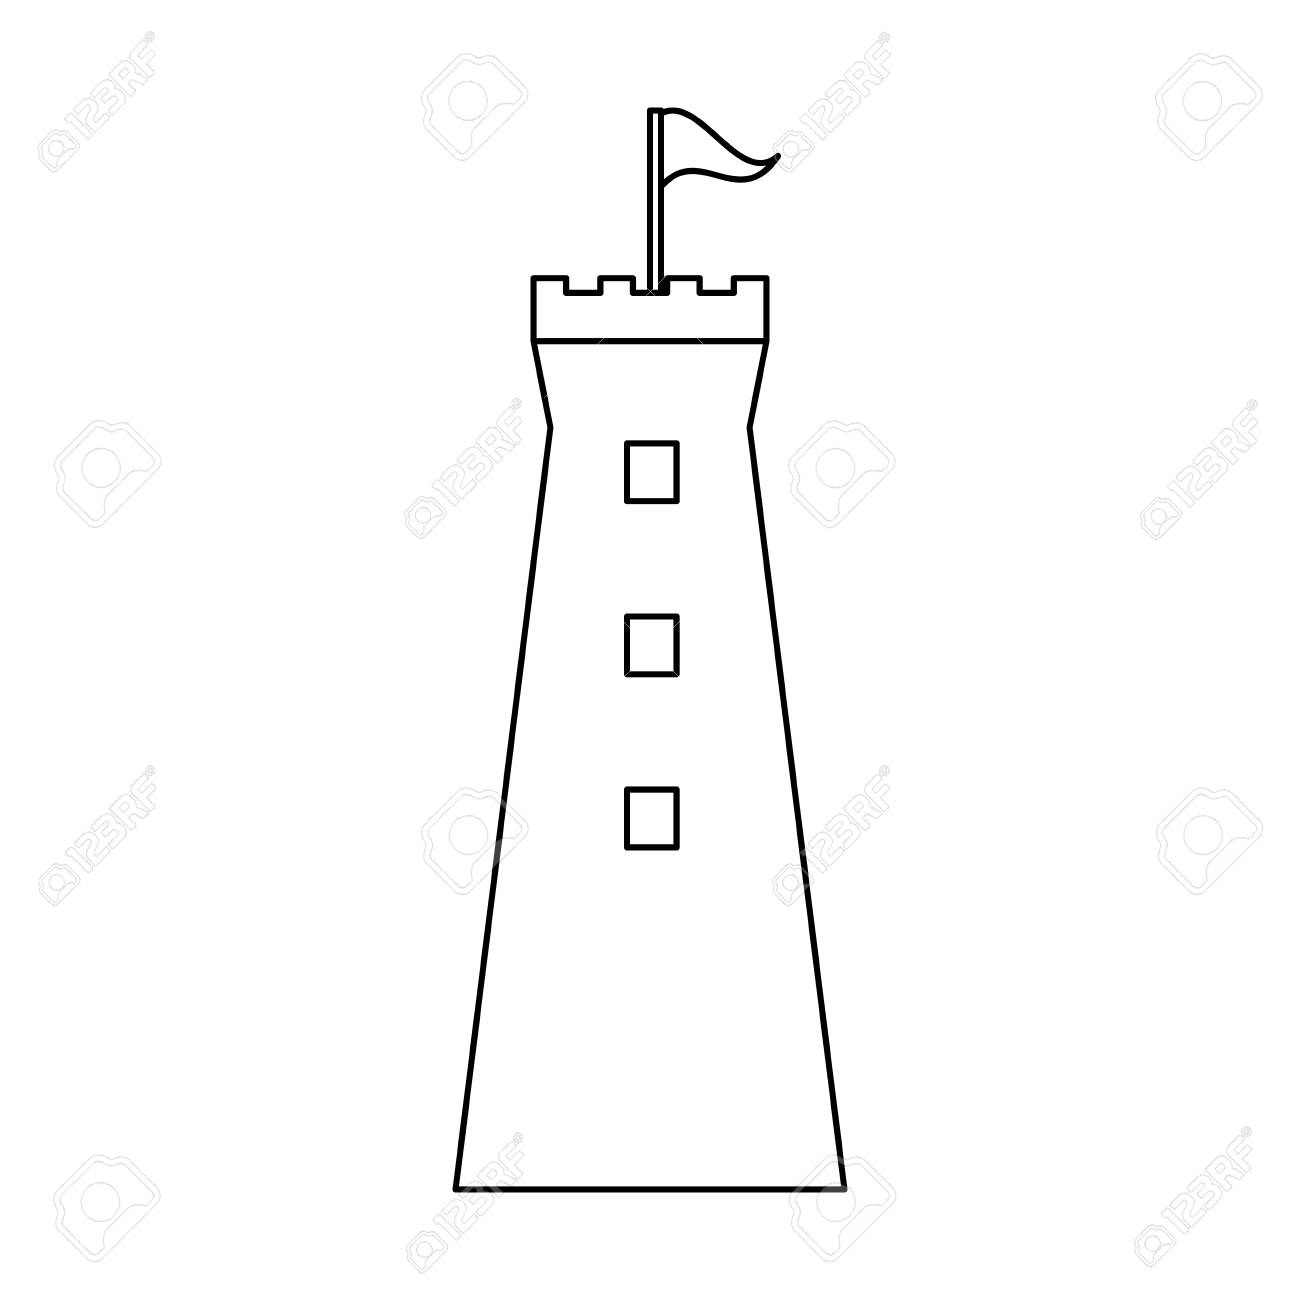 112962228 medieval castle tower isolated vector illustration graphic design medieval castle tower isolated vector illustration graphic design